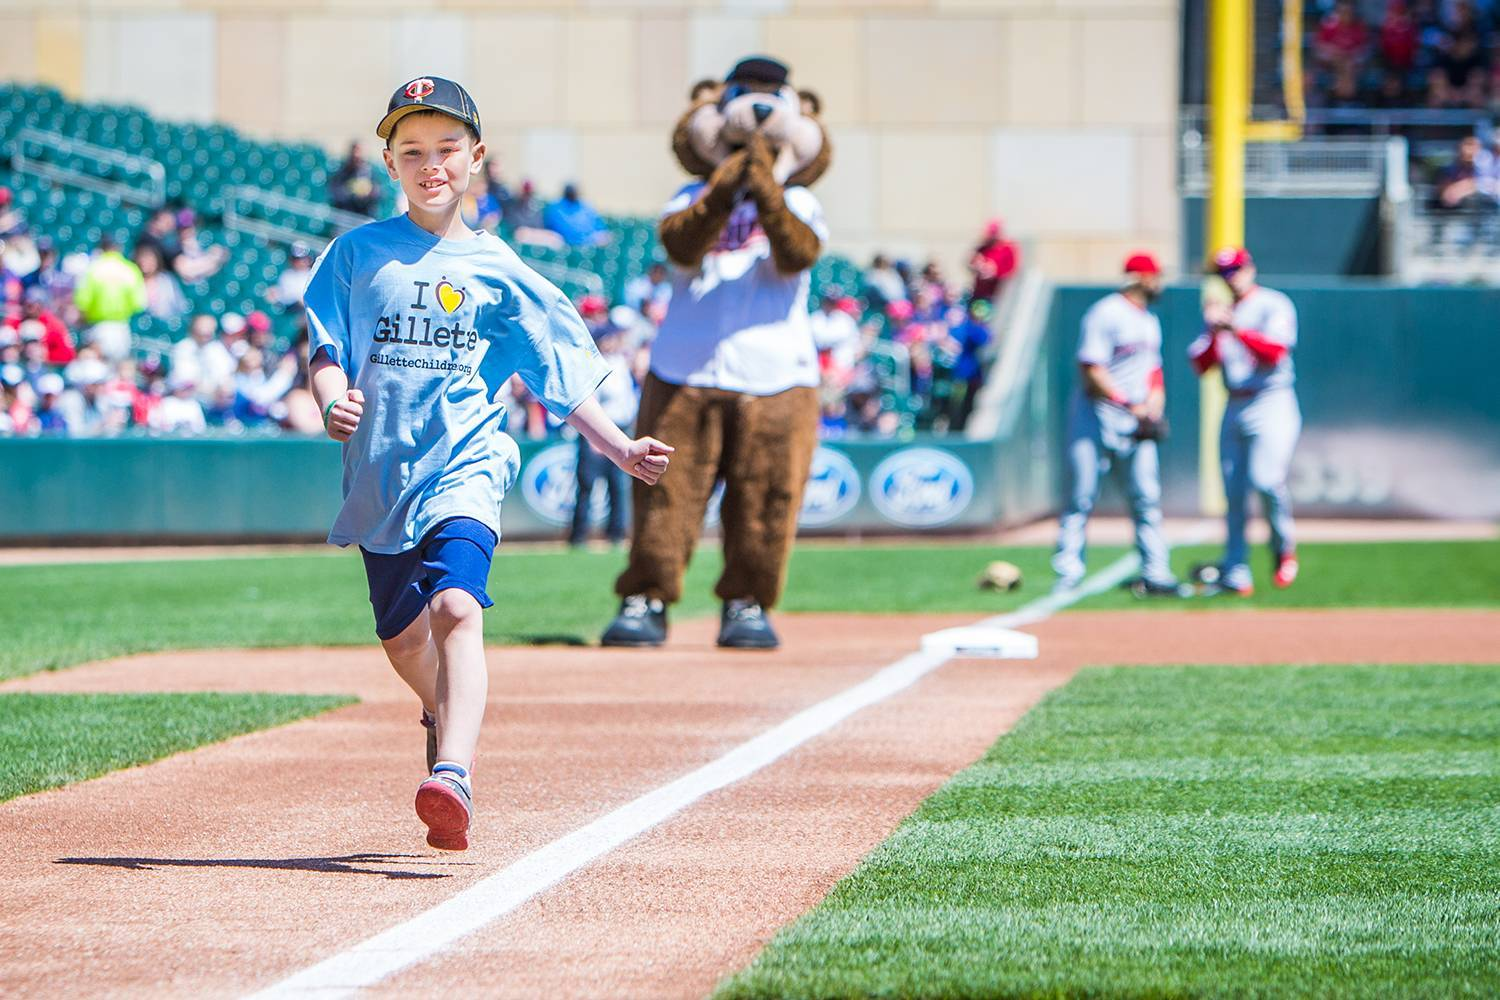 gillette patient Wyatt runs the bases